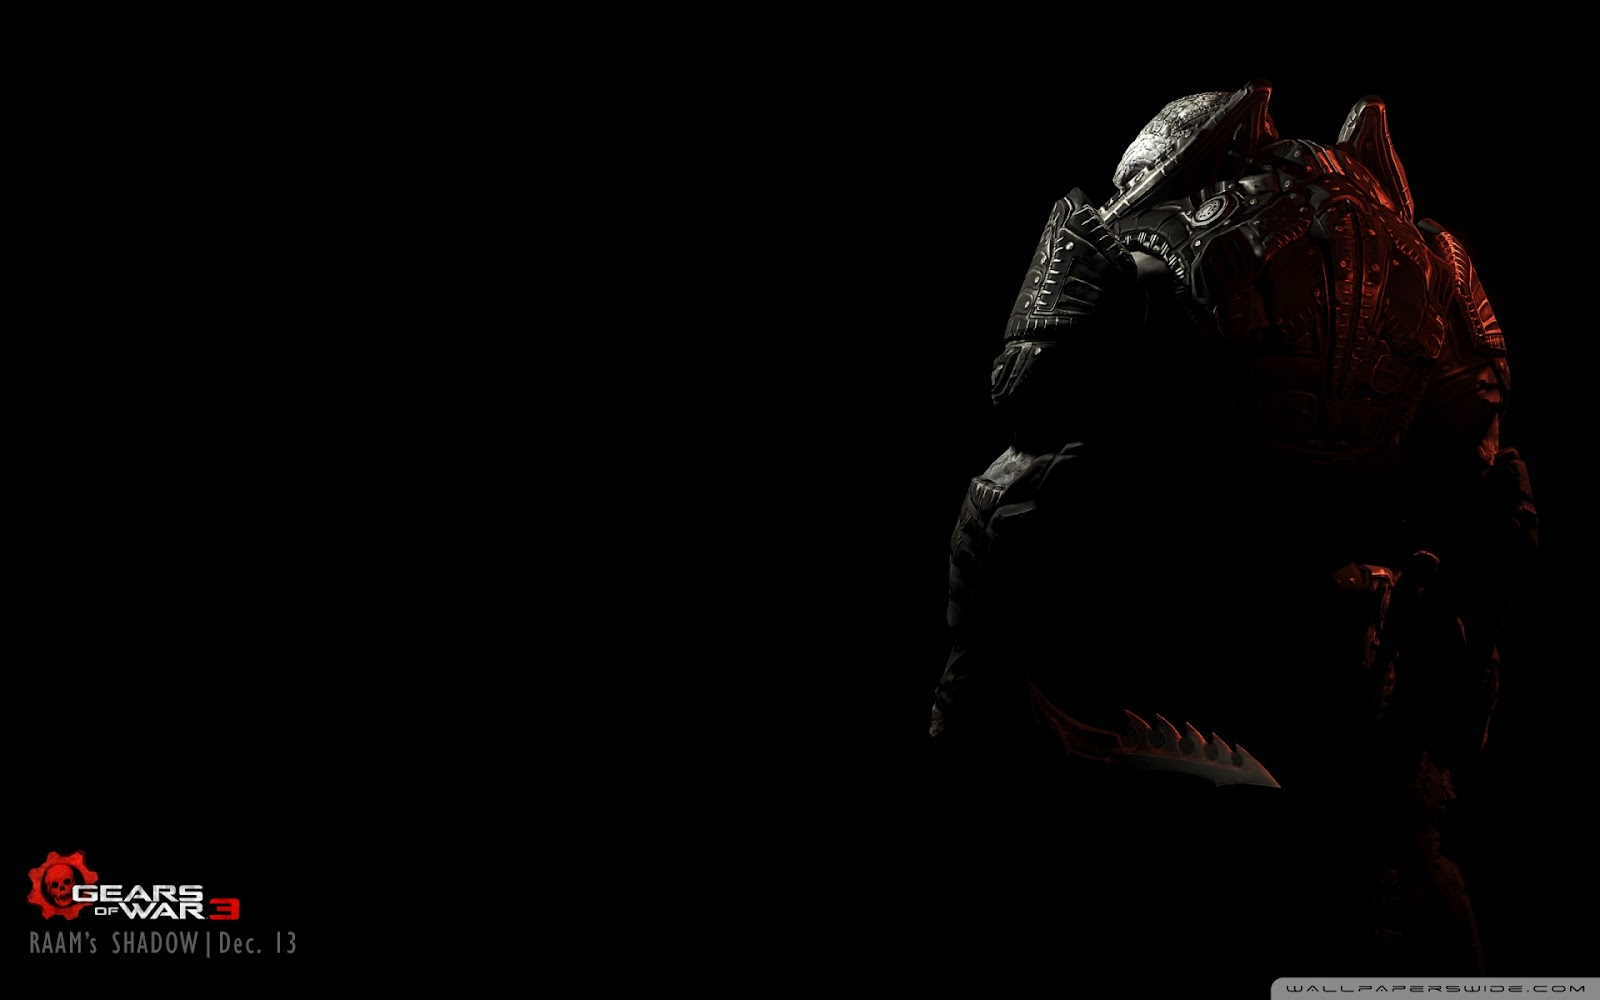 Gears of War HD & Widescreen Wallpaper 0.366918558841174